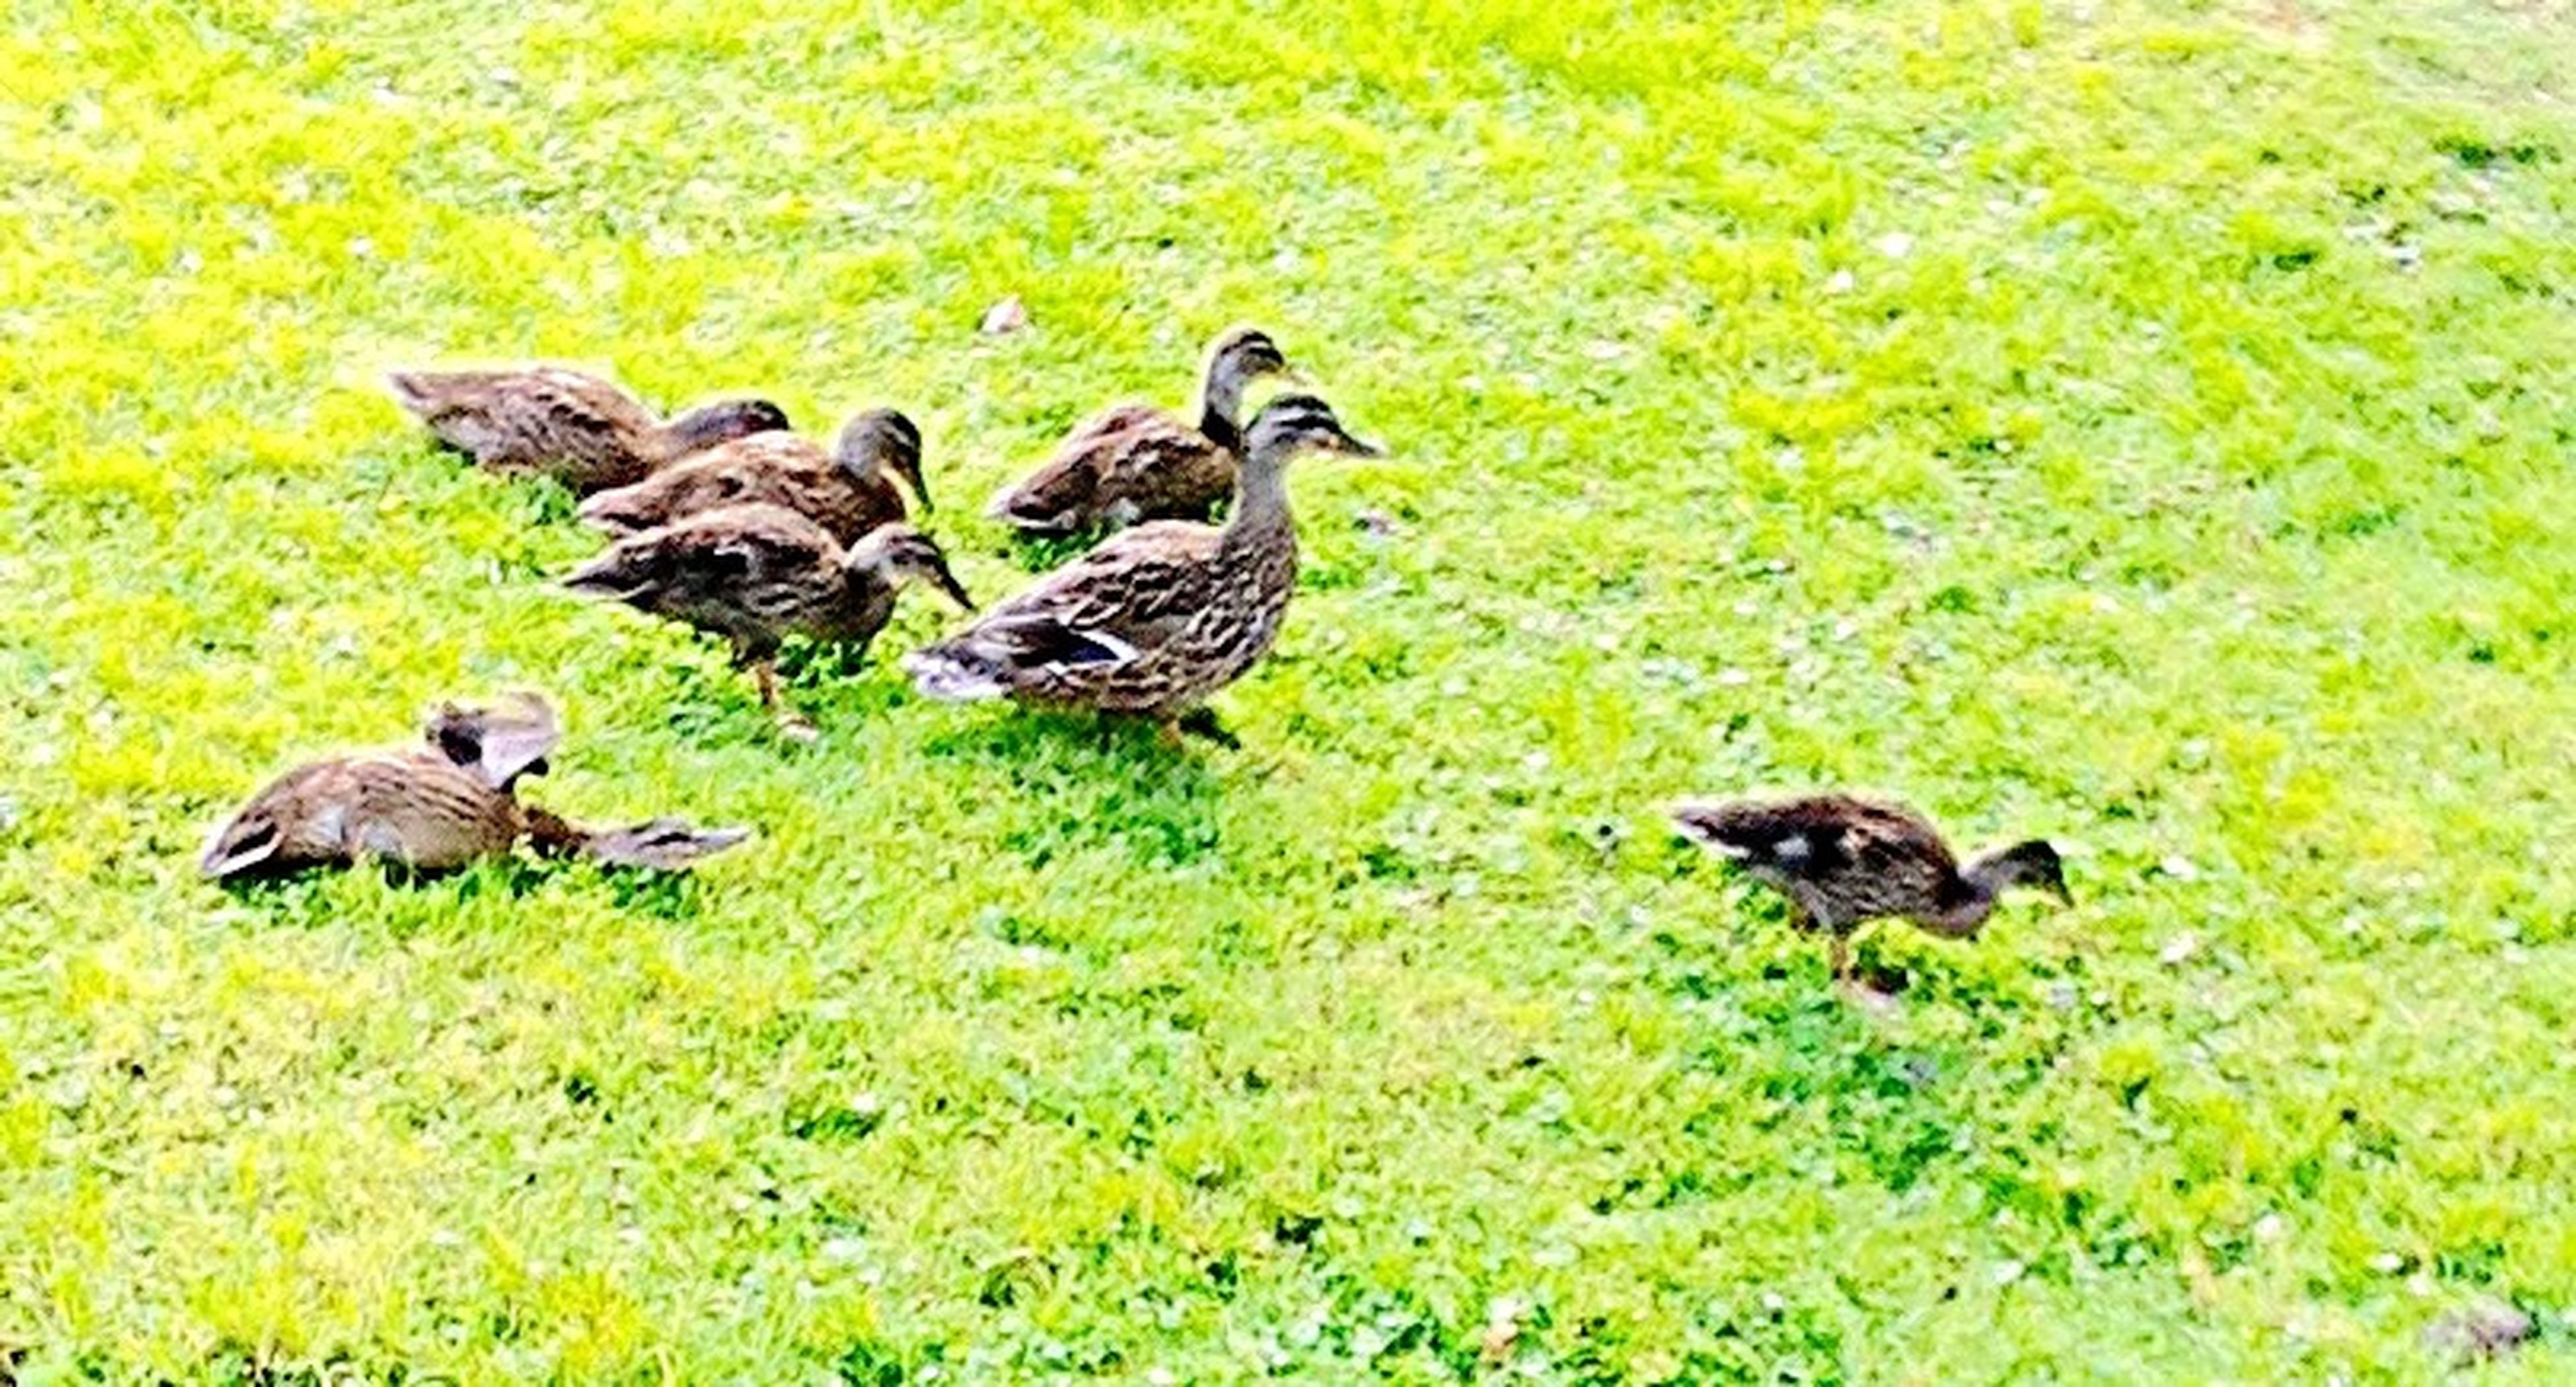 animal themes, animals in the wild, bird, wildlife, grass, duck, green color, field, nature, grassy, togetherness, mallard duck, high angle view, two animals, no people, outdoors, full length, day, beauty in nature